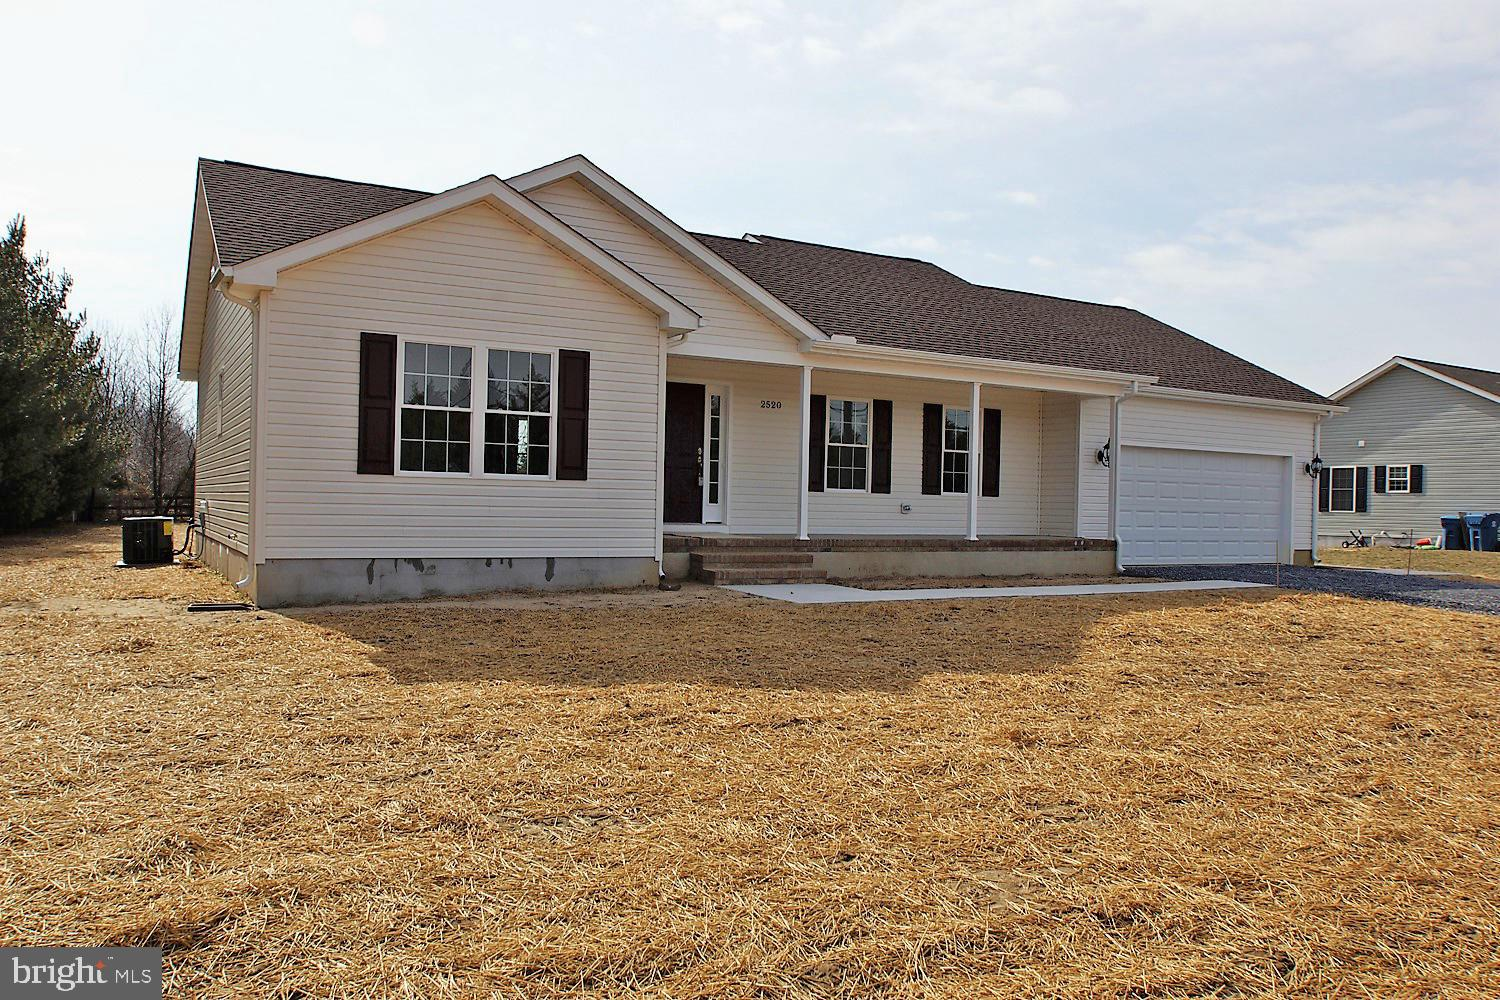 Country Living at its best! As you enter this home you will notice the gleaming planked floors and open floor plan. The kitchen is a chef~s dream, wide open kitchen with granite countertops, stainless steel appliances, breakfast bar, morning room leading to a large deck! This new home is ready for a new owner. Custom built!~ Quality Built! ~Sit on your deck and admire the country view! Sitting on 3/4 of an acre. No HOA fee. Don't miss this home!